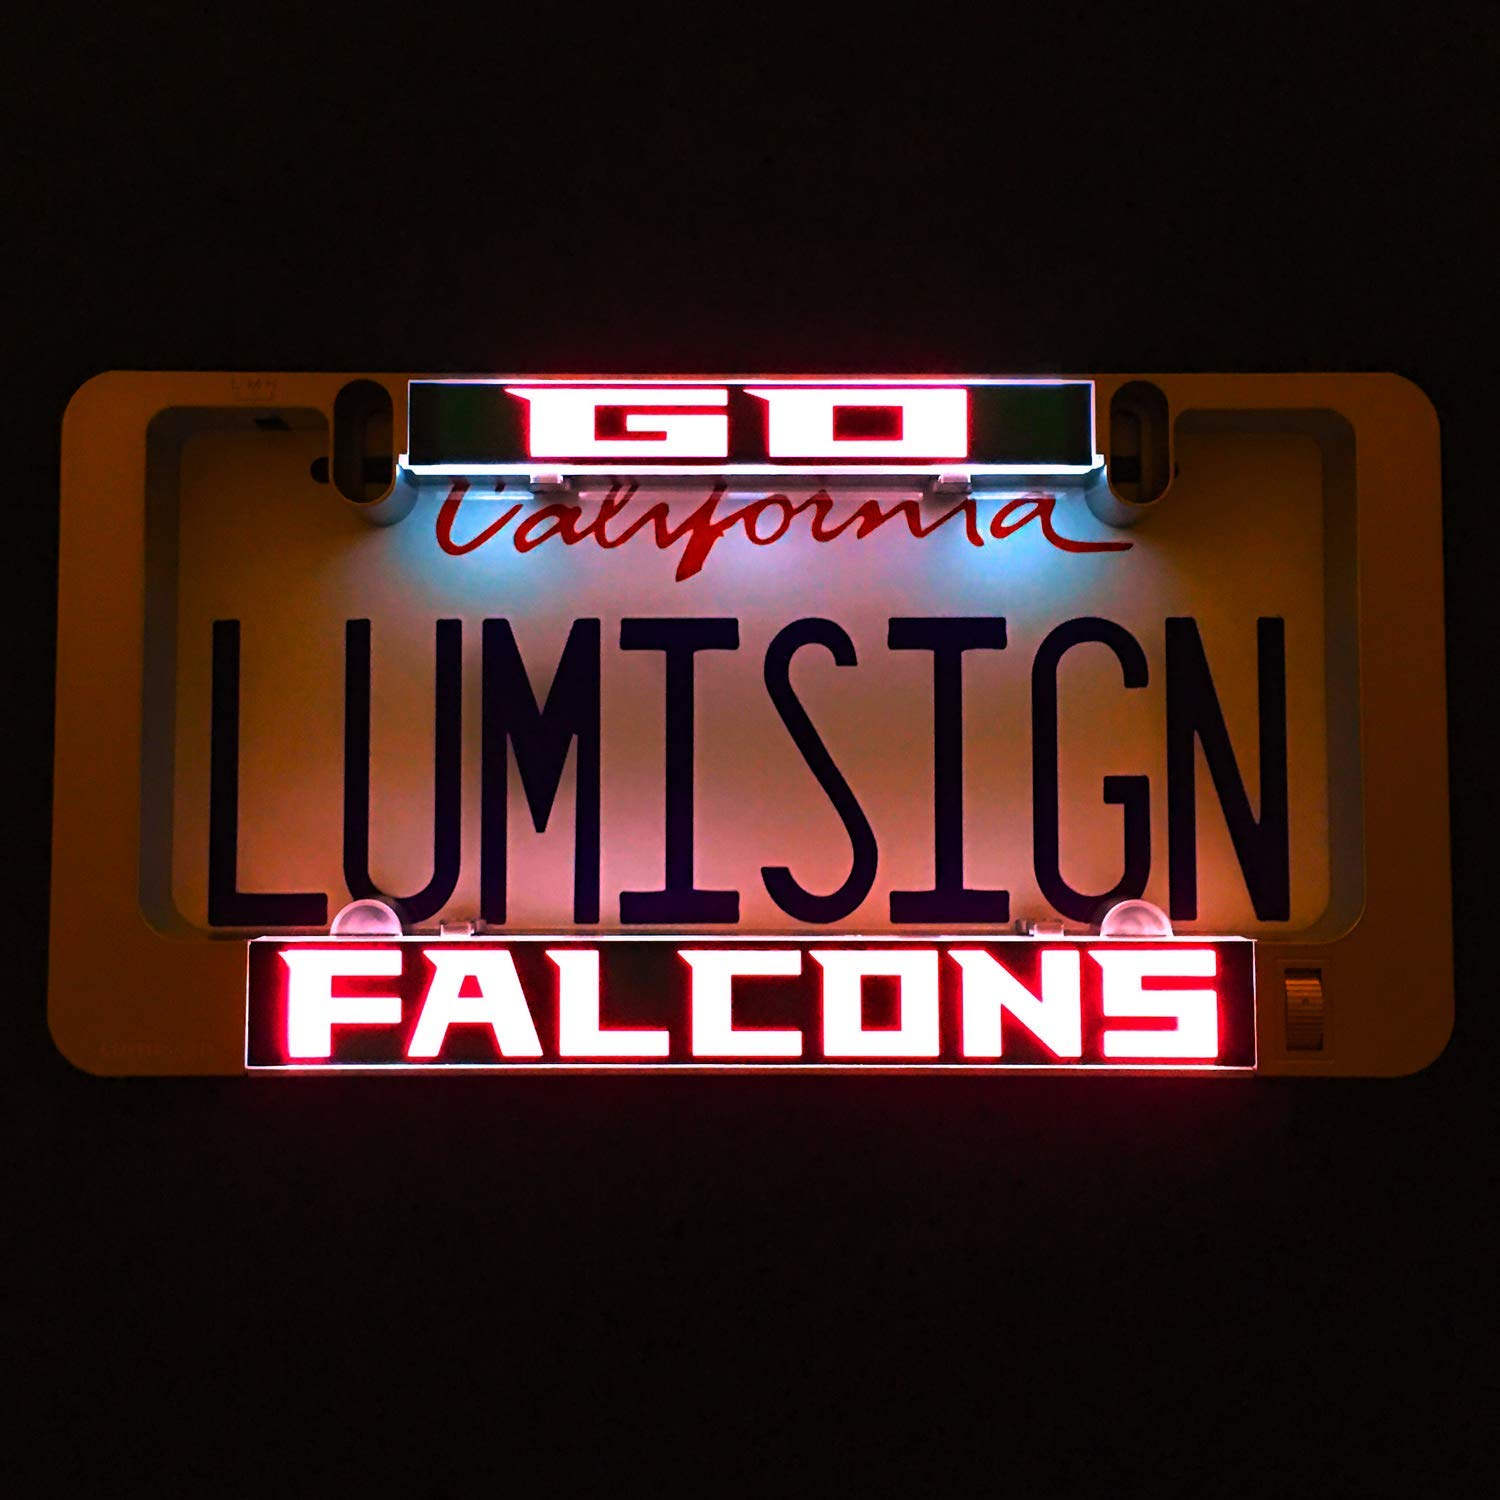 LumiSign - The Auto Illuminated License Plate Frame | Lights Up While You Brake | Installs in Seconds | No Wires, Battery Operated | Interchangeable Inserts Olens Technology